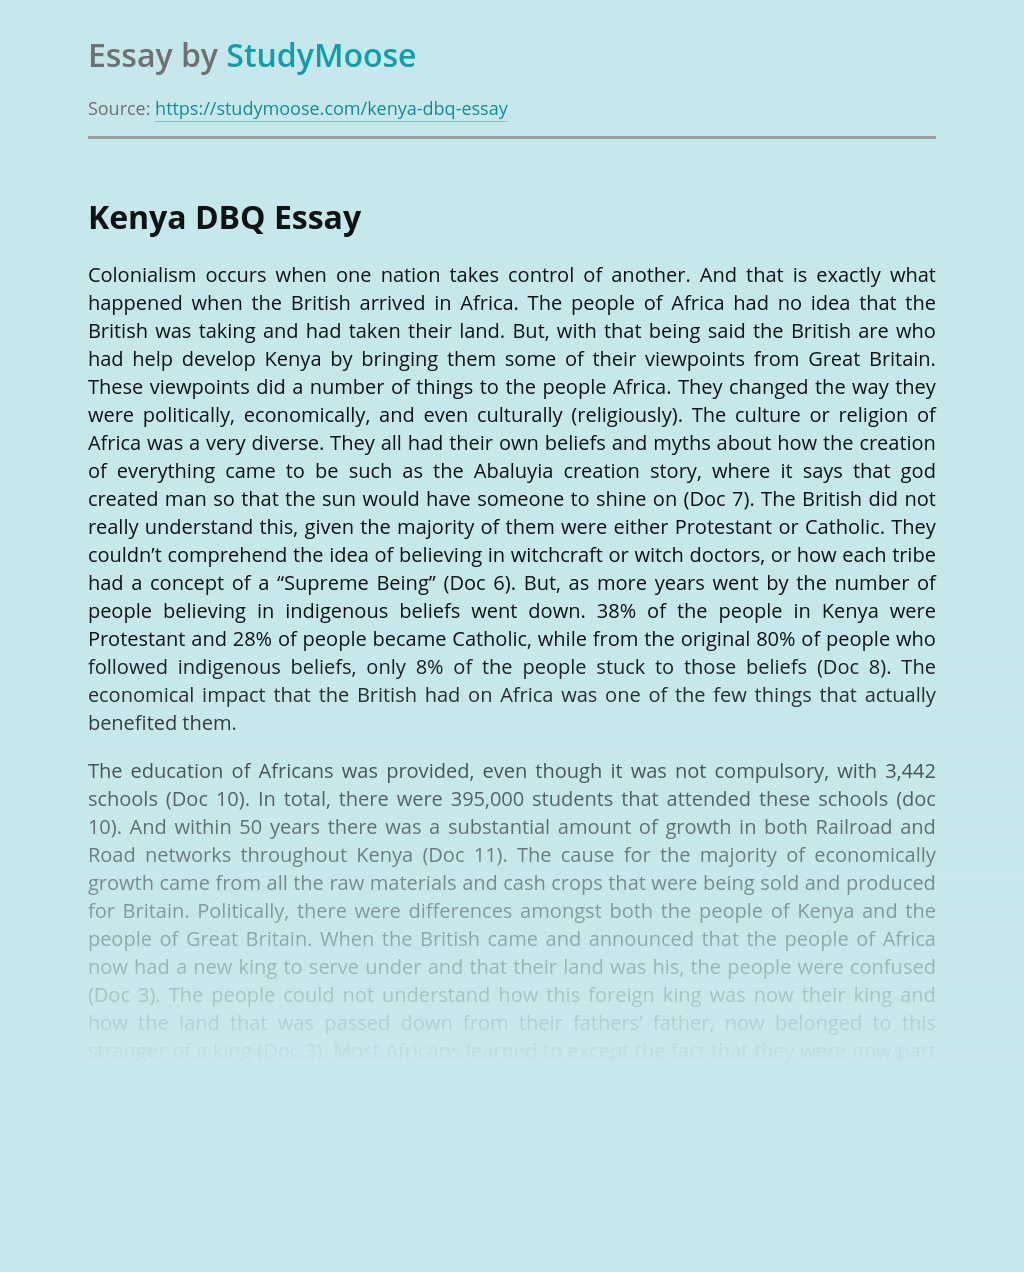 Imperialism In Africa and Colonialization of Kenya